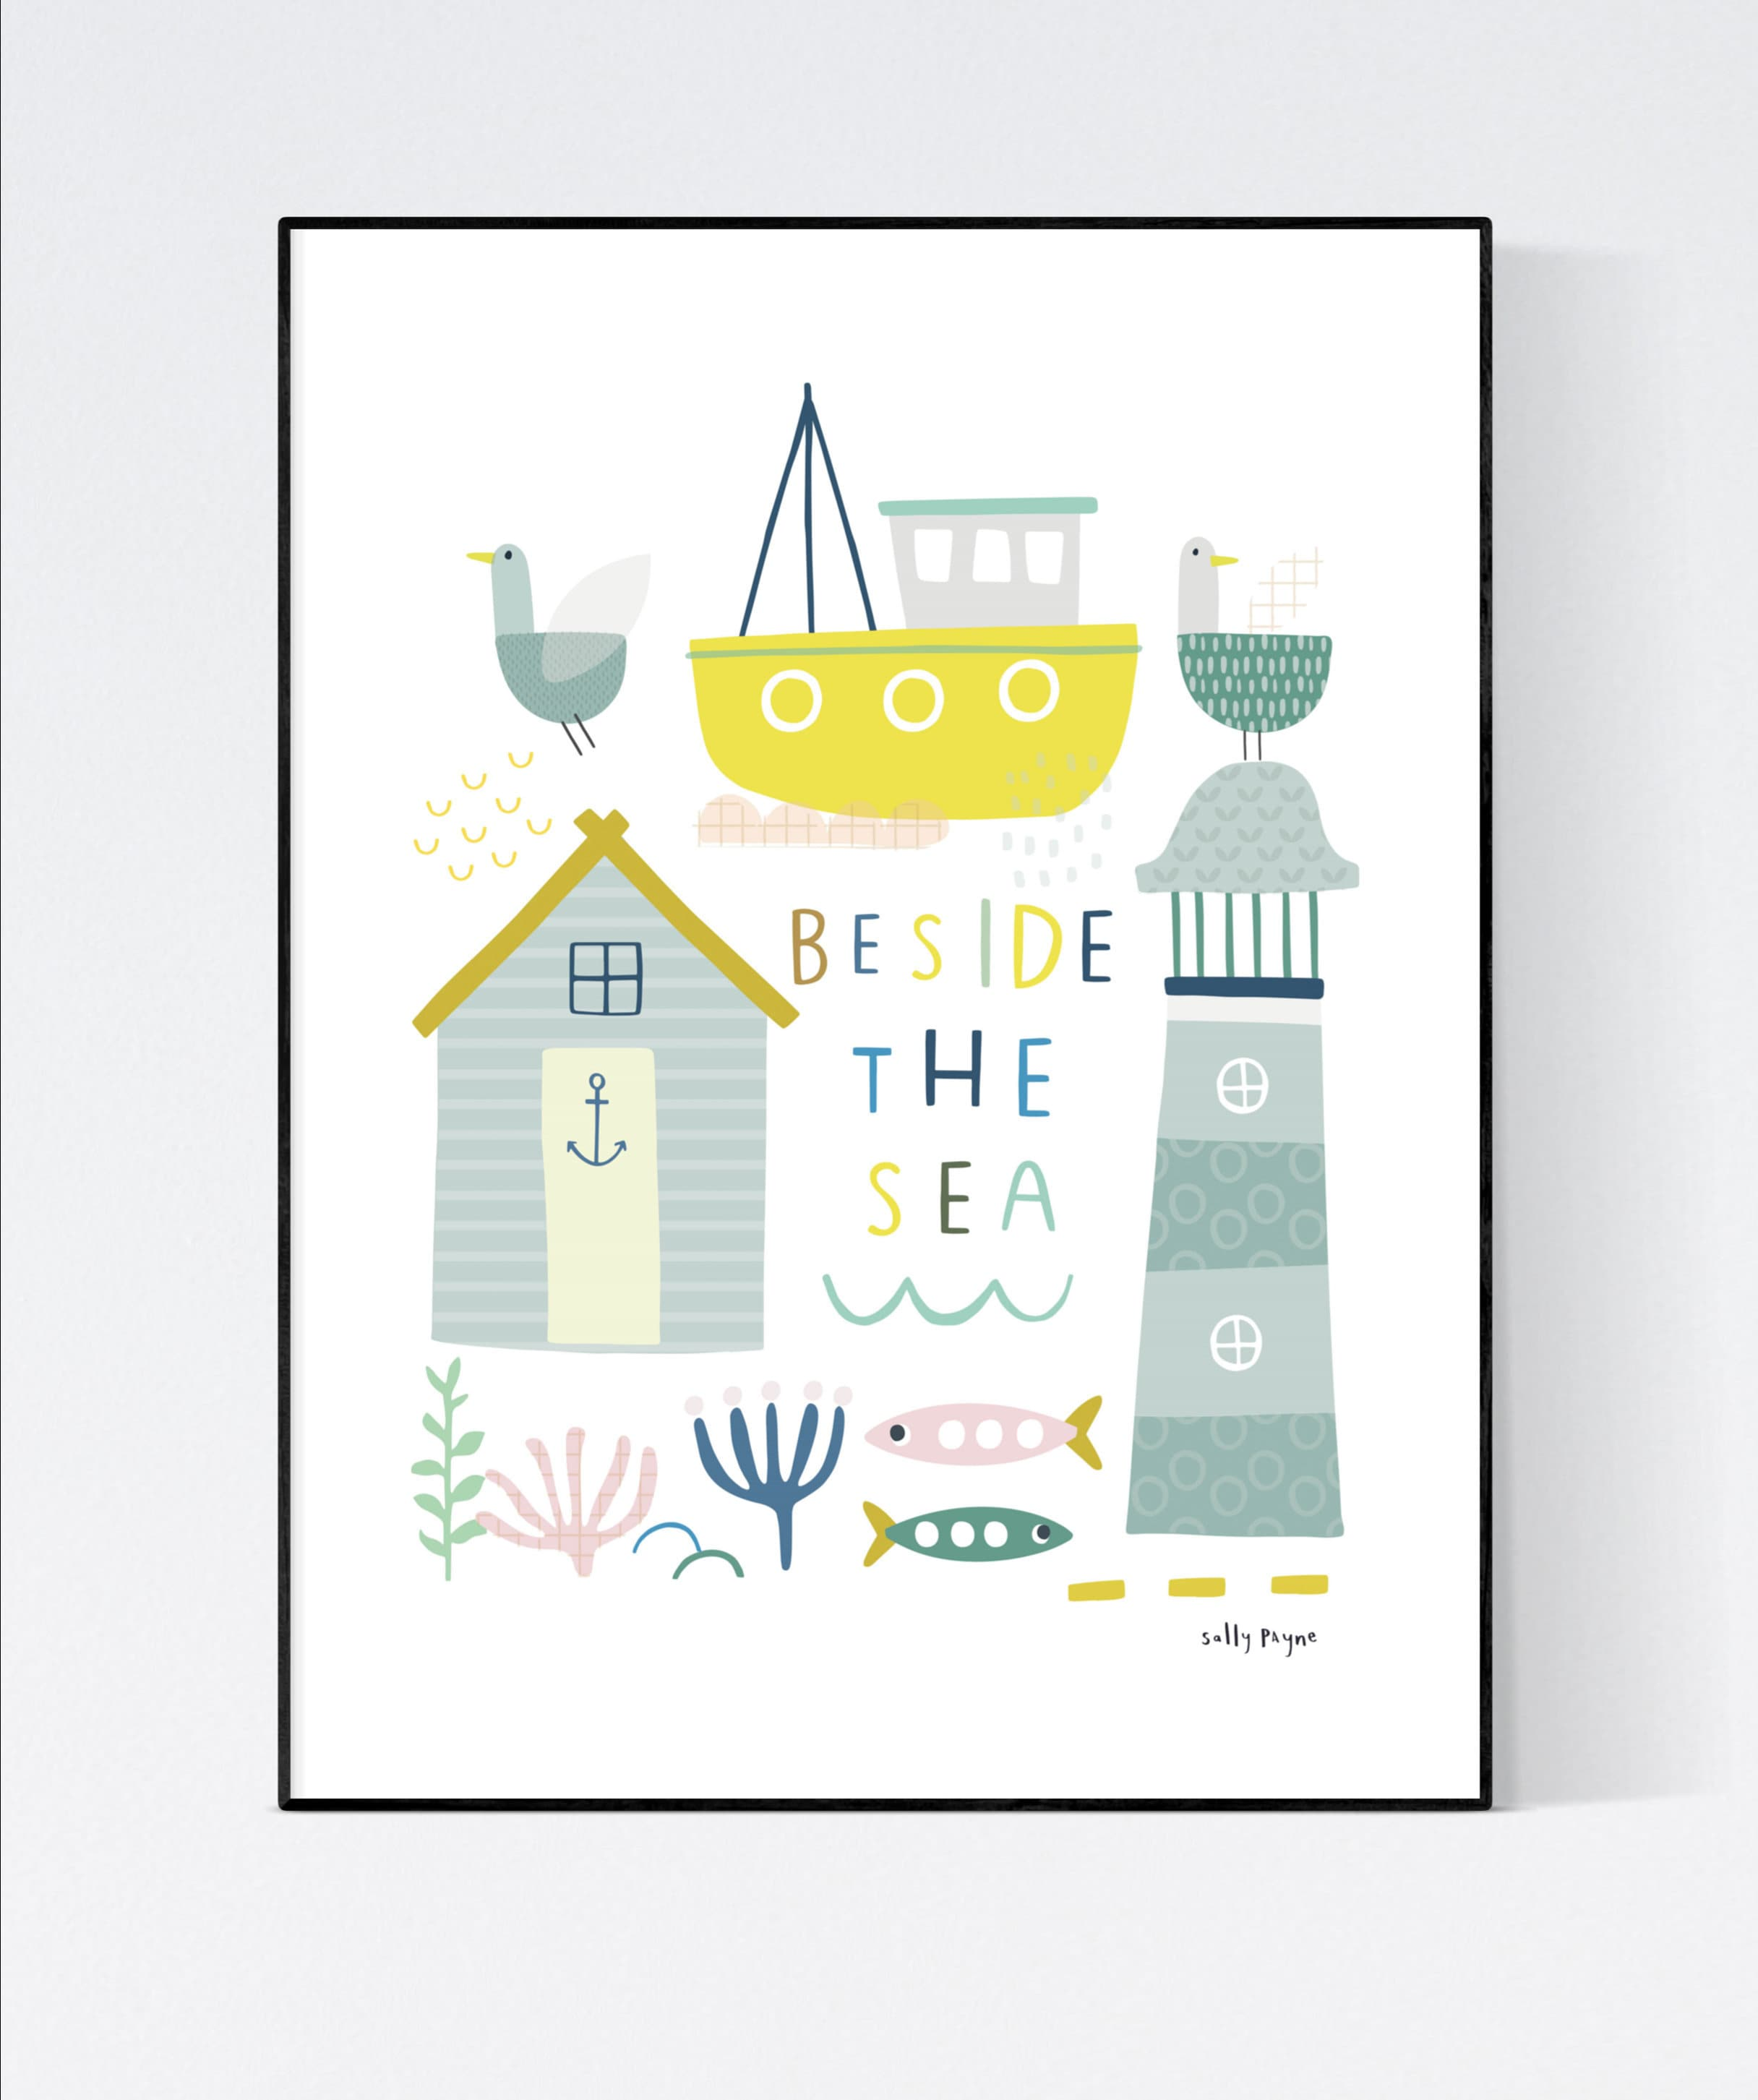 Beside the sea -  wall art -  Children's prints -  Children's wall art - Children's Illustration